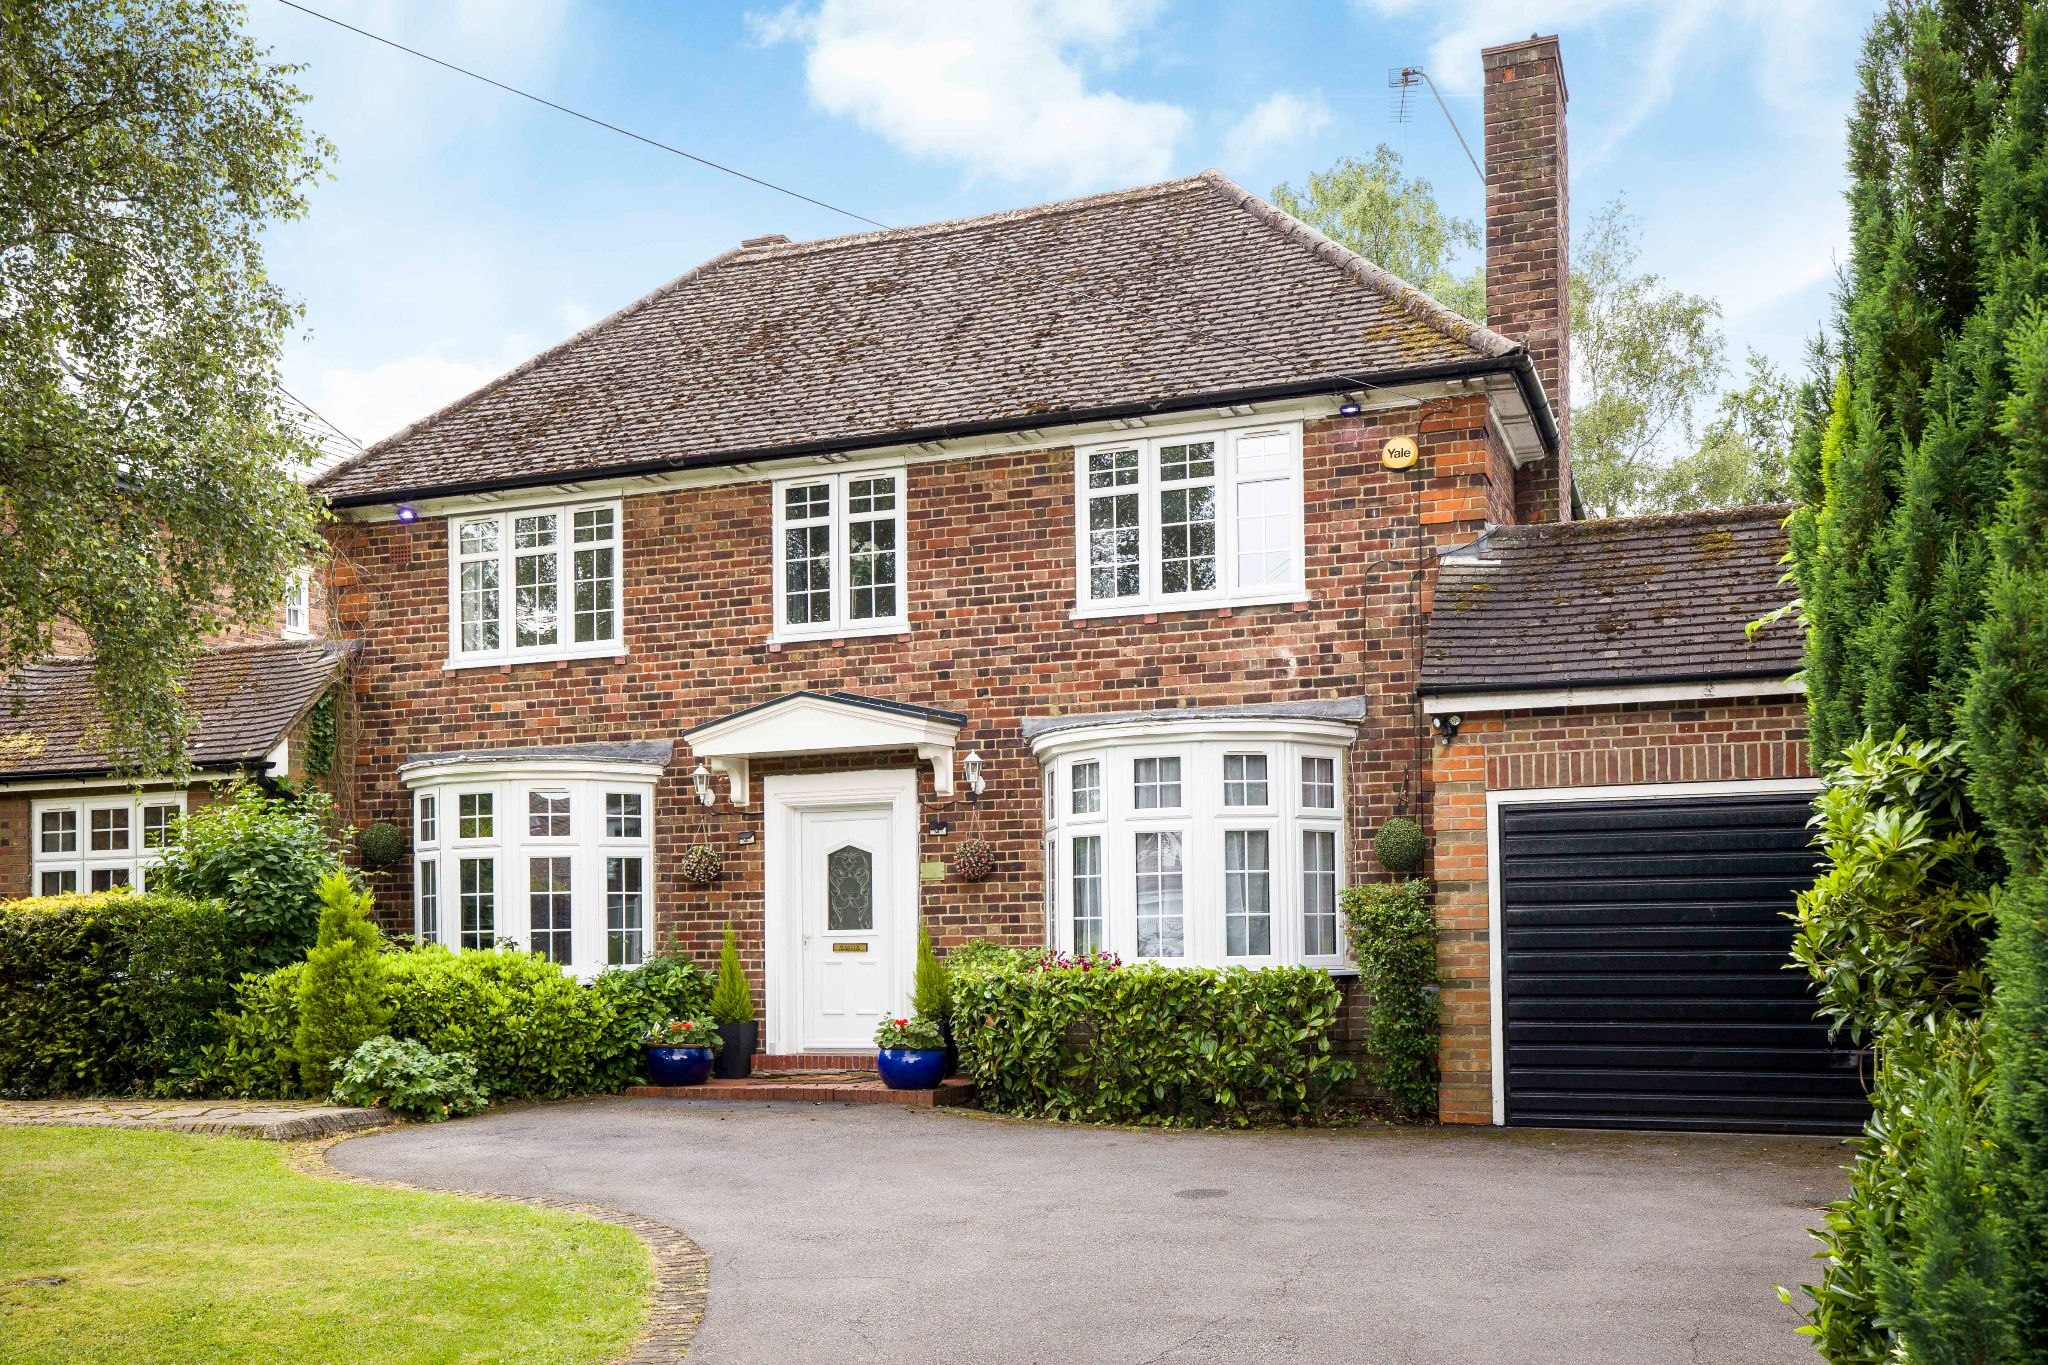 3 bedroom detached house For Sale in Brookmans Park - Property photograph